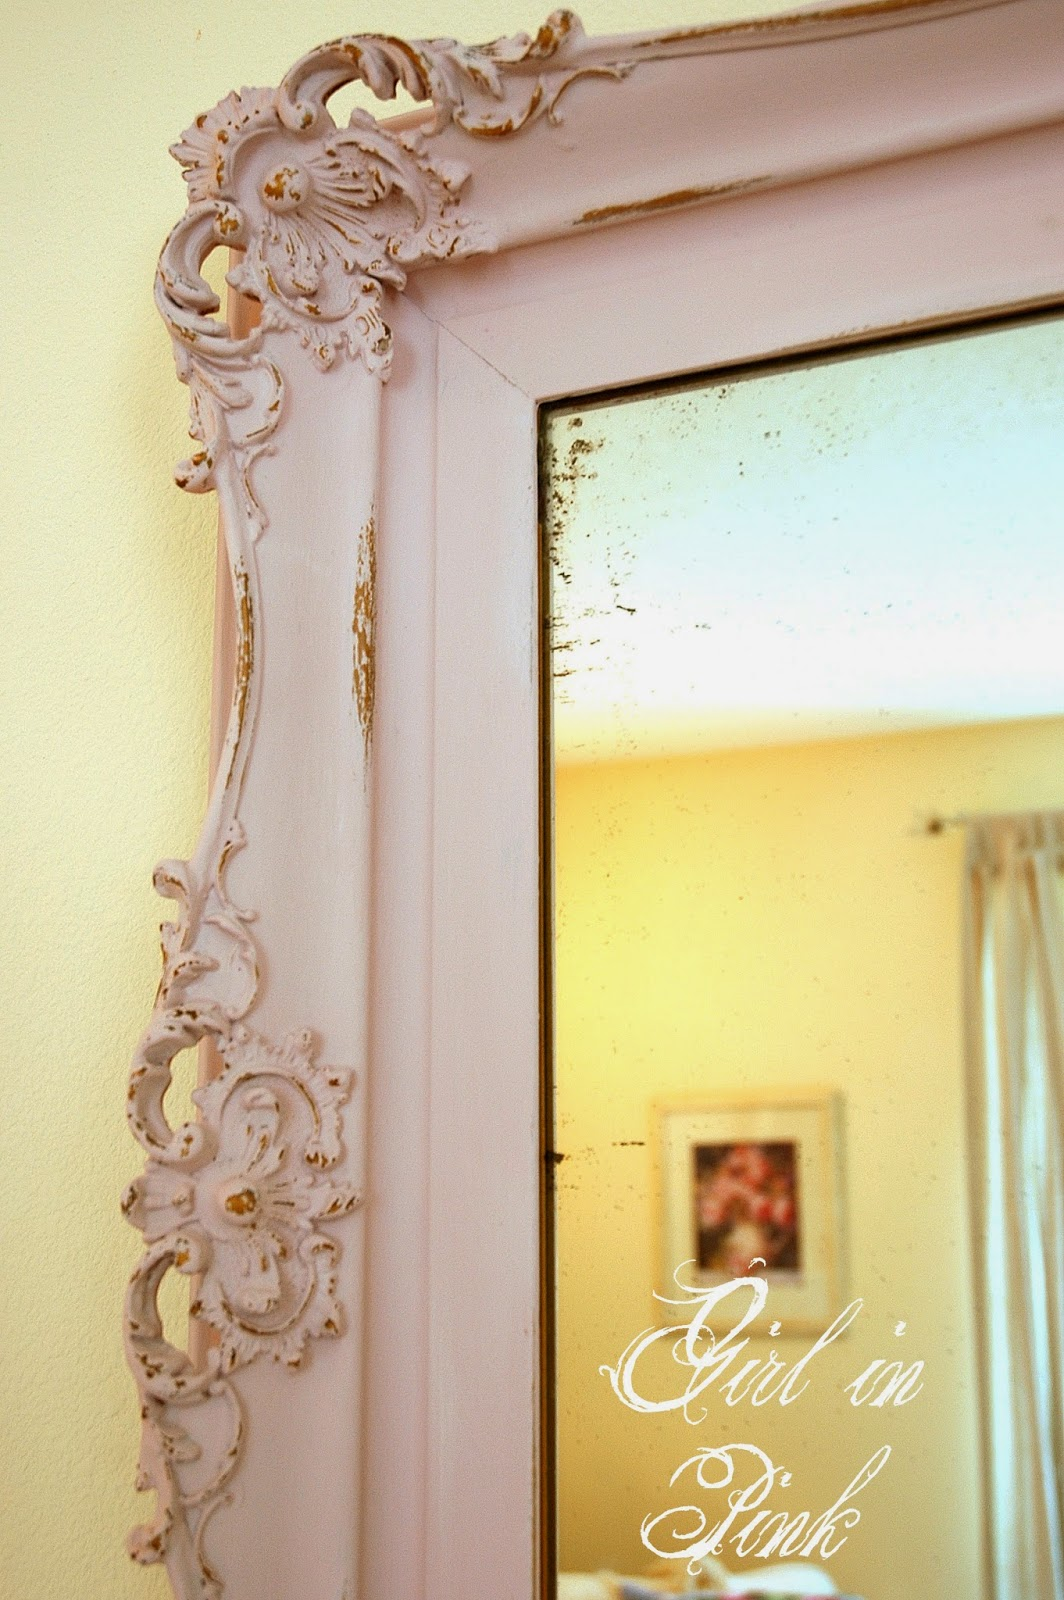 How to paint an old mirror frame